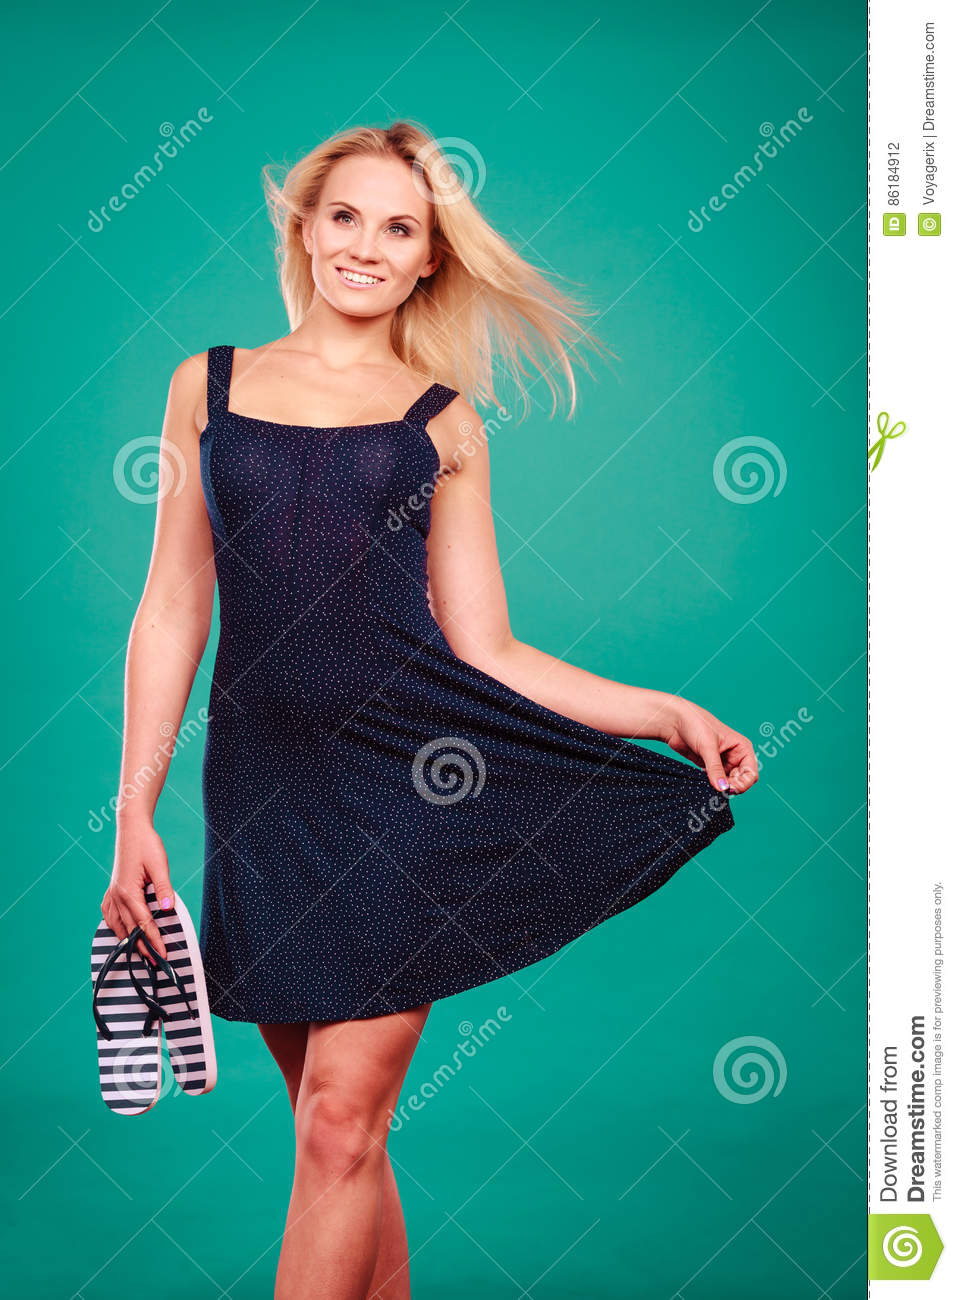 6b1747907e70 Summer trendy fashionable outfit ideas concept. Woman wearing short navy  dress holding flip flops. More similar stock images